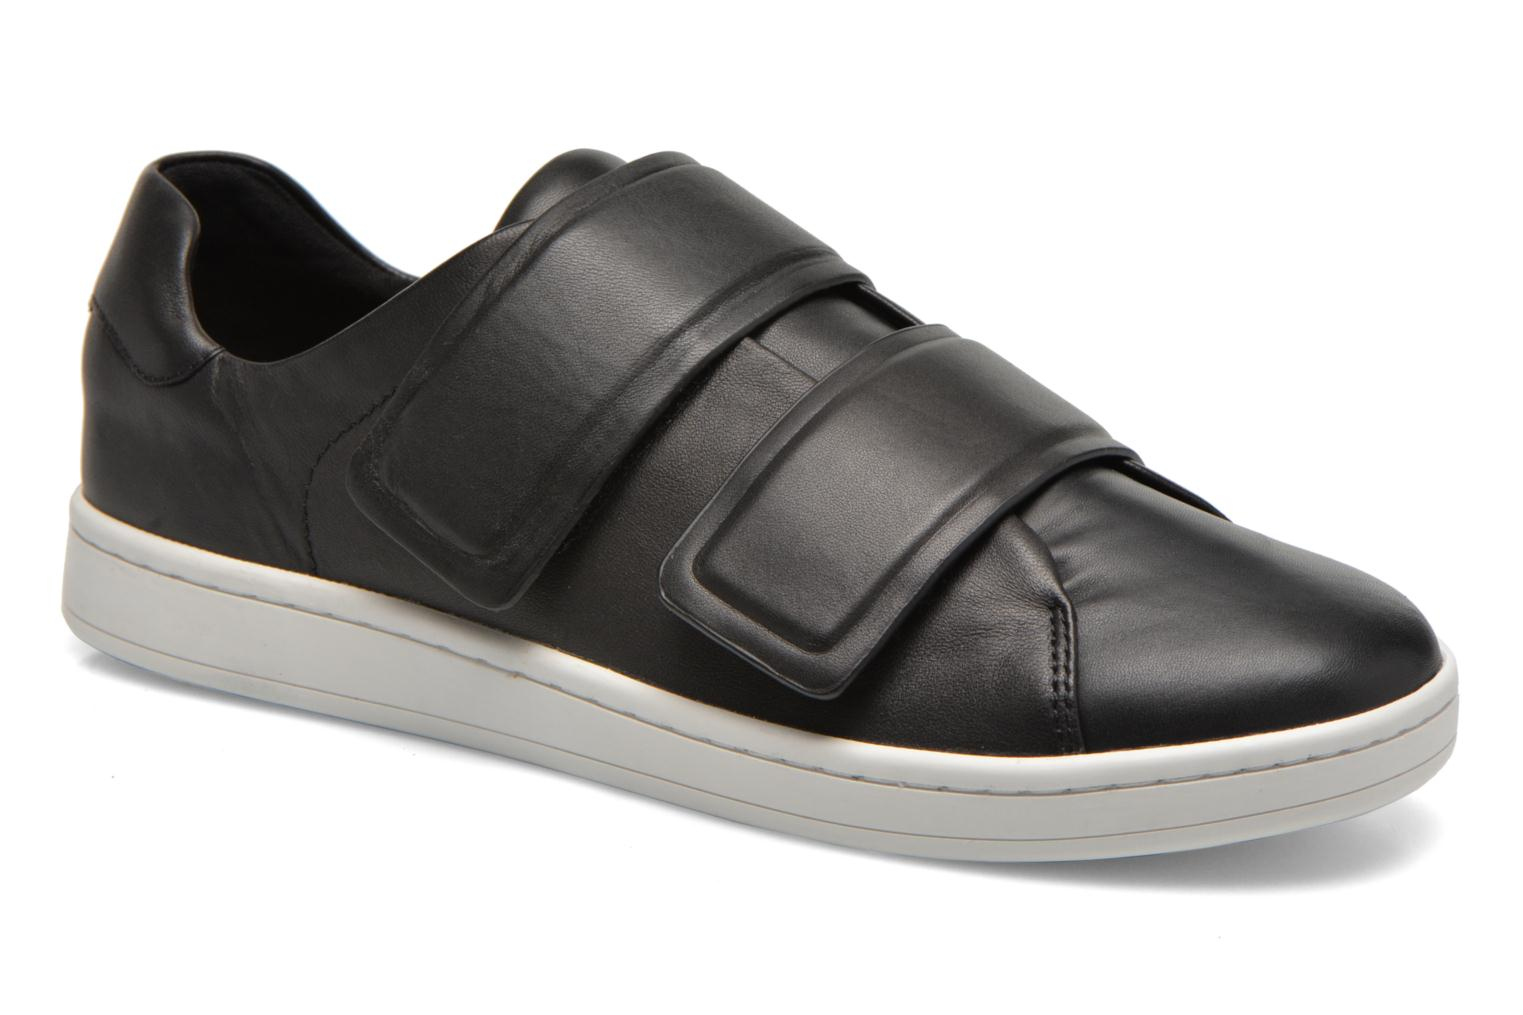 Marques Chaussure femme DKNY femme Brionne 001 black